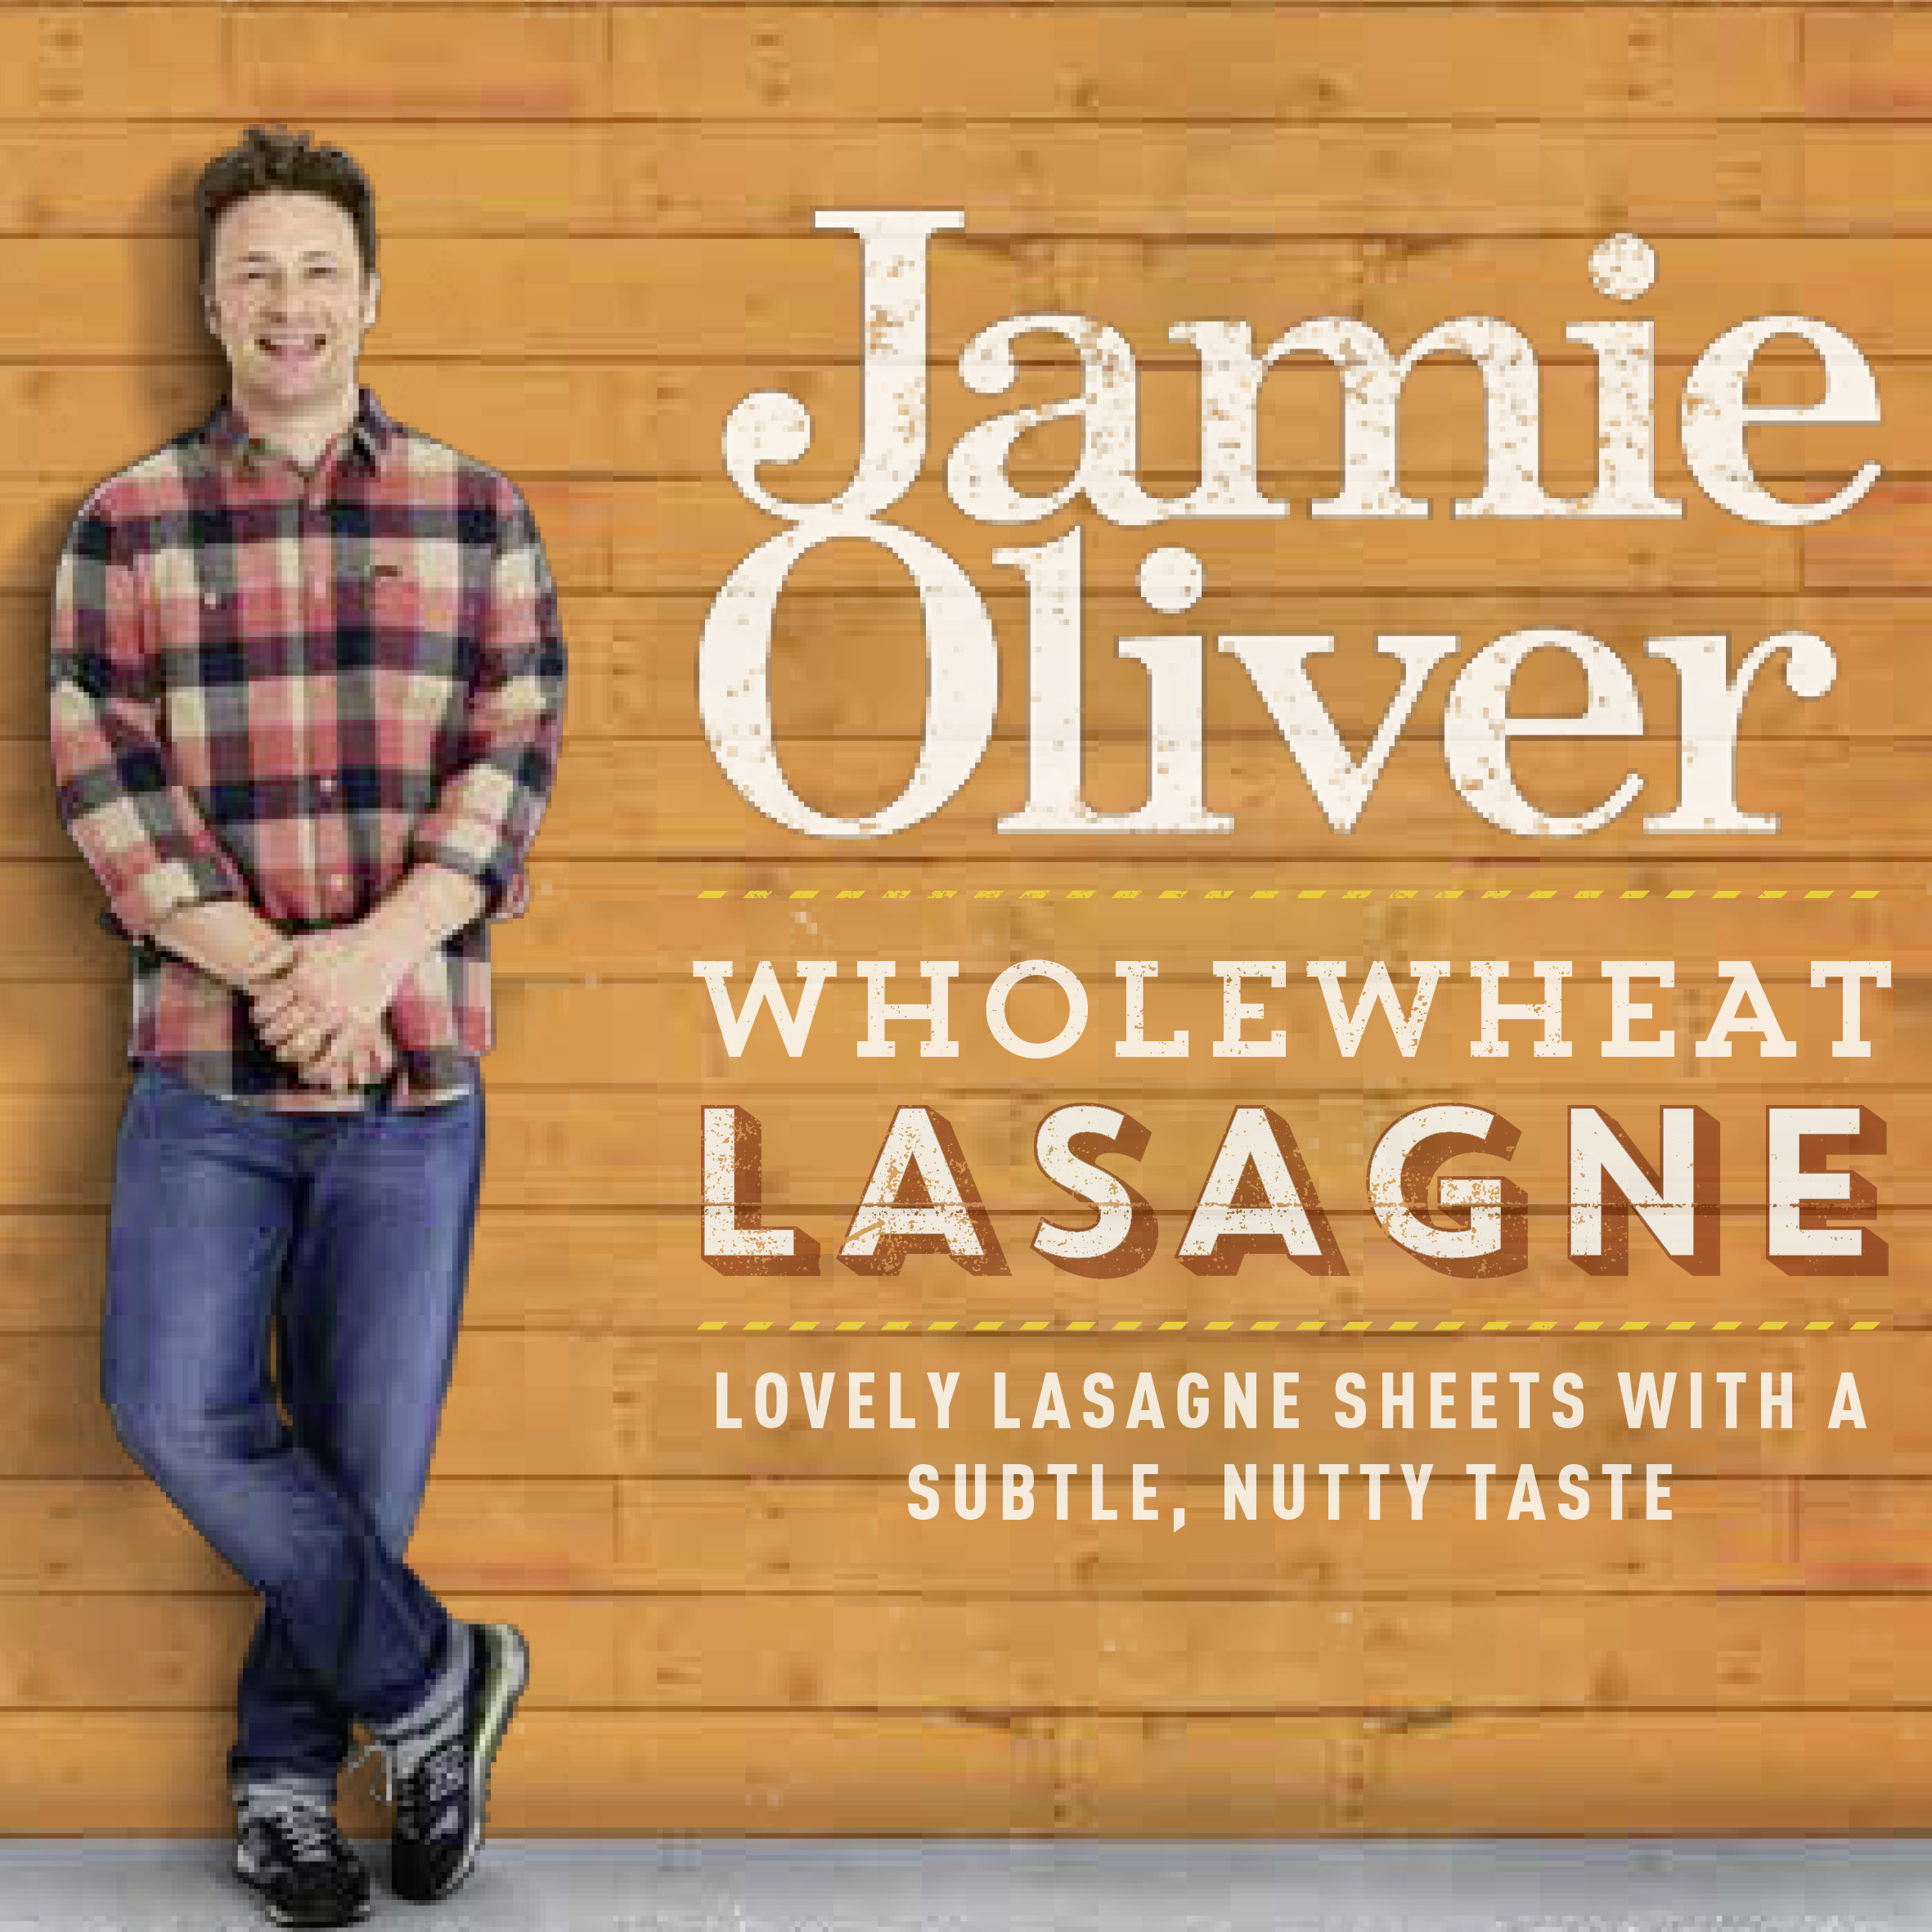 60 Jamie Oliver Wholewheat Lasagne_THUMB